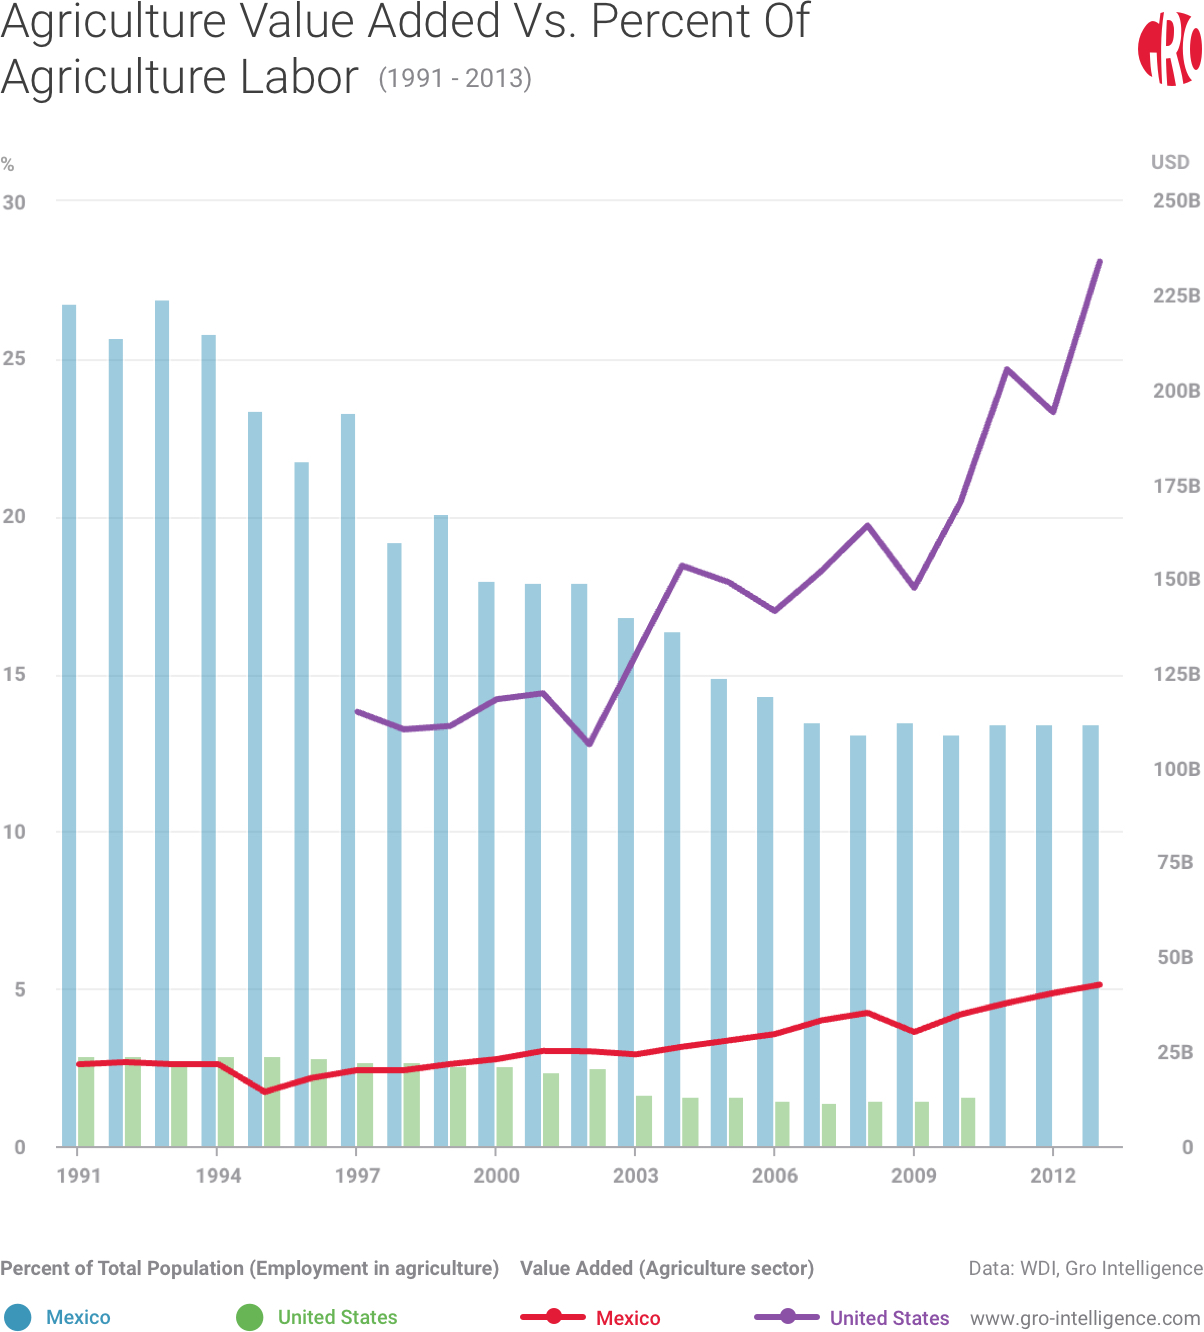 Agriculture Value Added Vs. Agriculture Labor in the US and Mexico